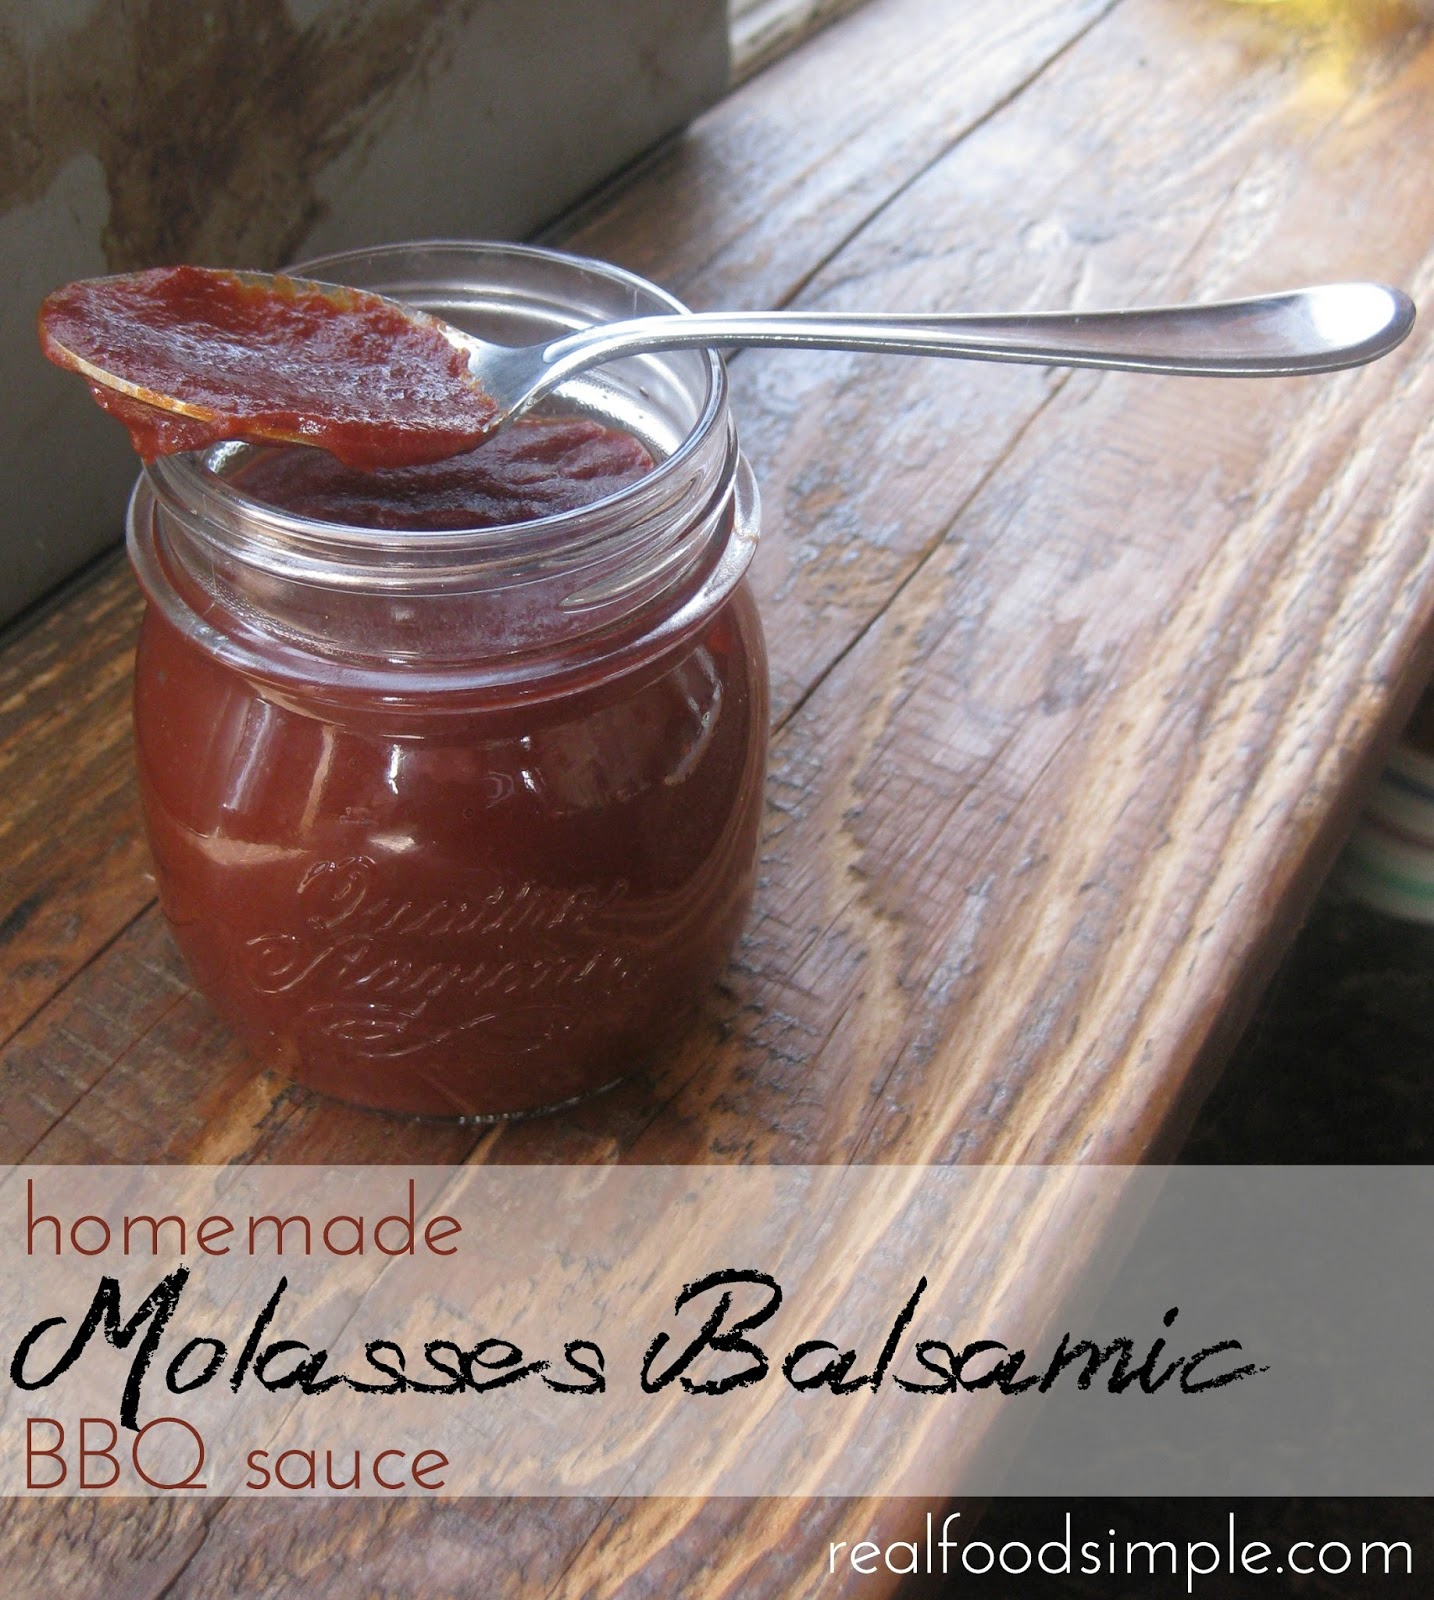 molasses balsamic BBQ sauce | realfoodsimple.com